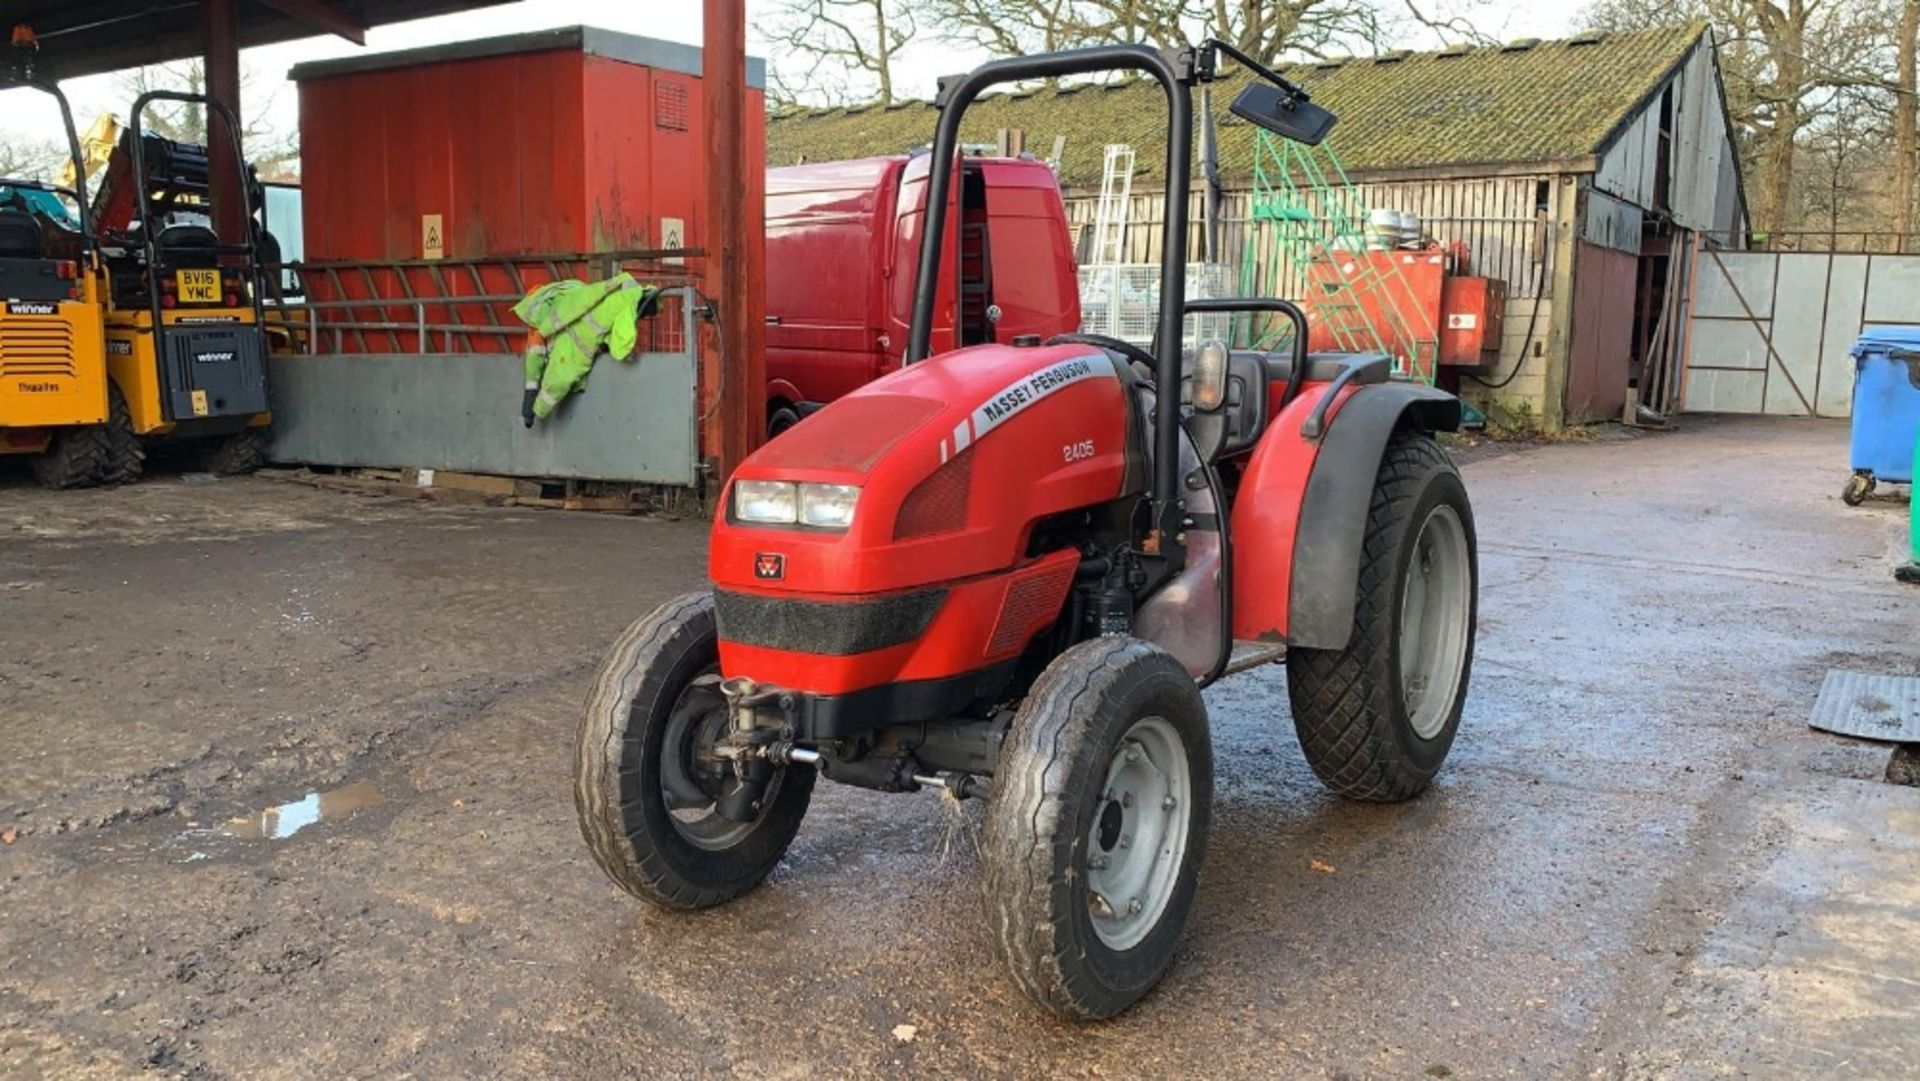 Lot 16 - MASSEY FERGUSON 2405 COMPACT TRACTOR, 4WD, 1197 REC HRS, YEAR 2006 BUILD, MITSUBISHI 3 CYLINDER